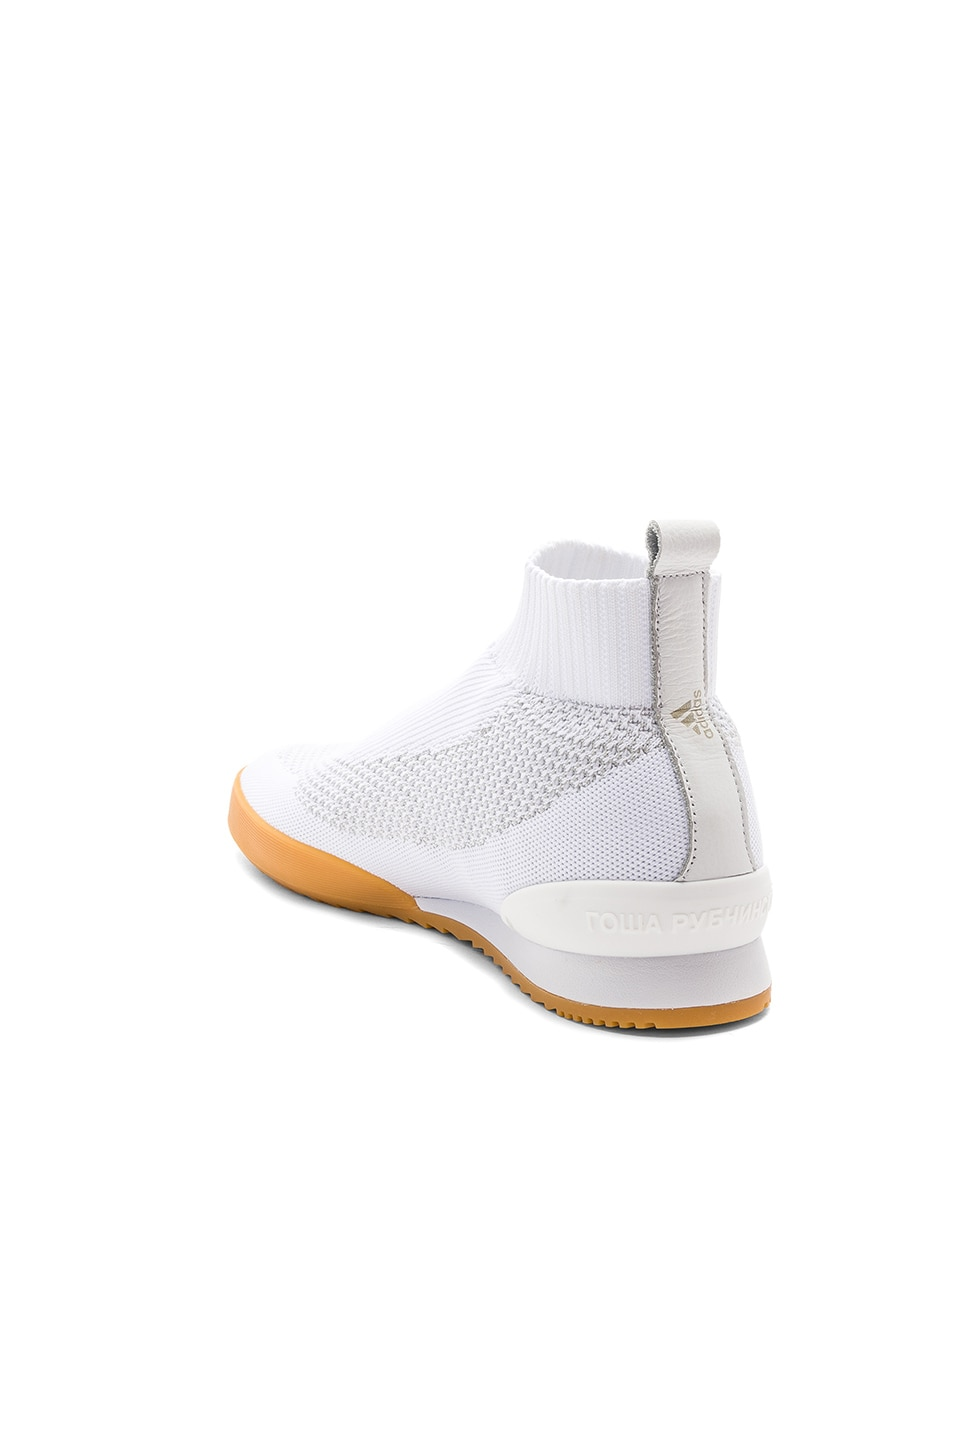 sale retailer 6d475 ce3cb ... Image 3 of Gosha Rubchinskiy x adidas Ace 16+ Super Shoes in White  sports shoes . ...